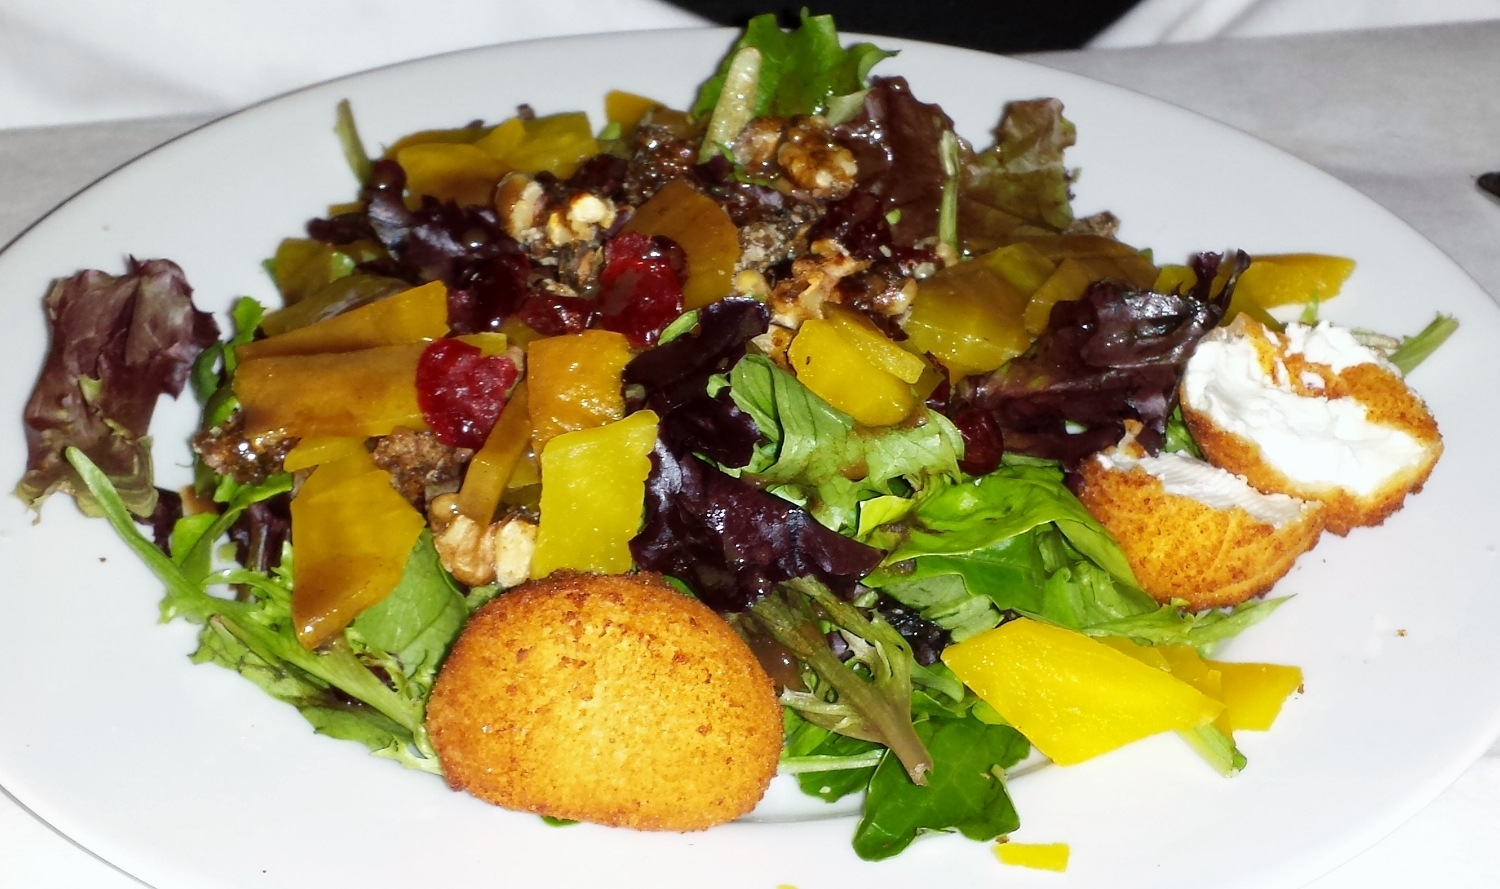 A gorgeous beet salad featured sugar-sweet golden beets, frittwers made from local chevre, walnuts candied in-house, dried cranberries, organic (of course) greens, and a maple Dijon vinaigrette.